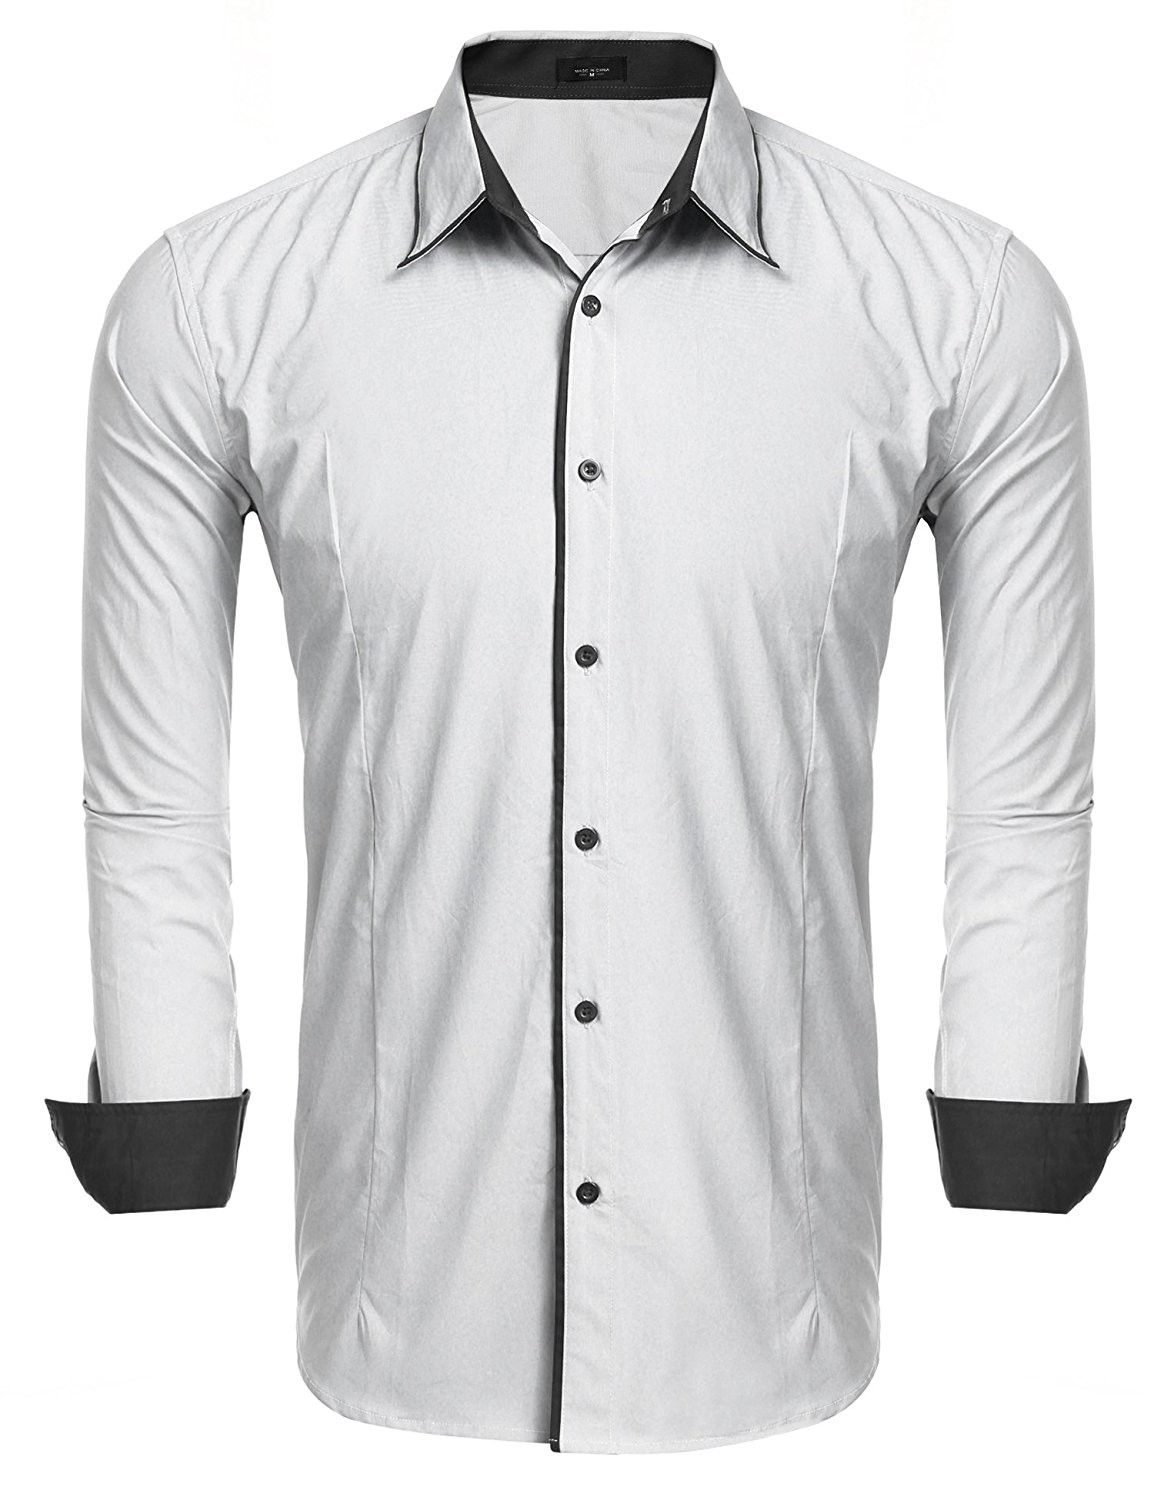 3b65438987e4 Men s Slim Fit Long Sleeve Oxford Shirt Business Casual Button Down Dress  Shirts - White - C4184K8NZY5